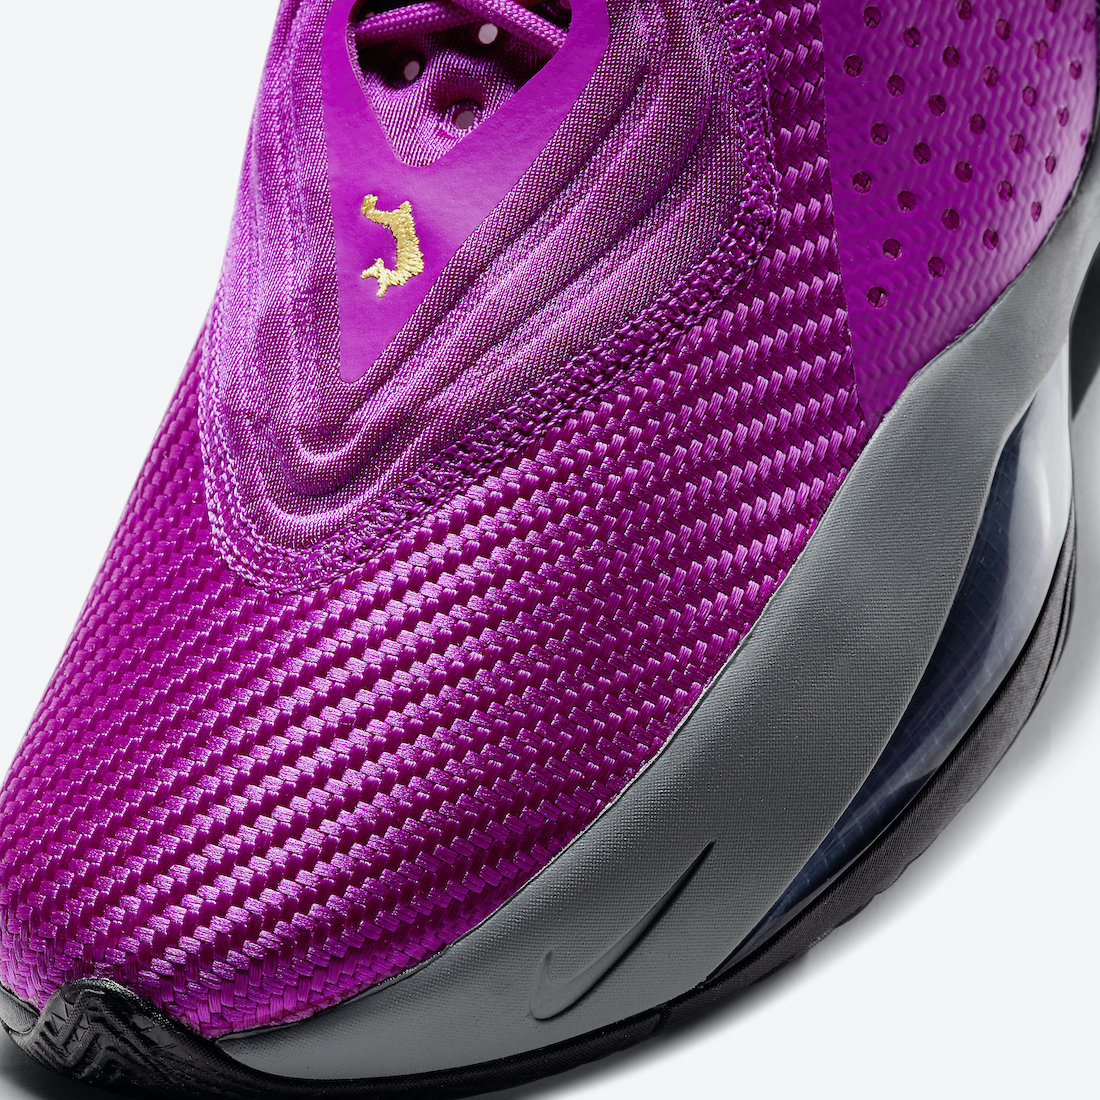 Nike LeBron Soldier 14 Lakers CK6047-500 Release Date